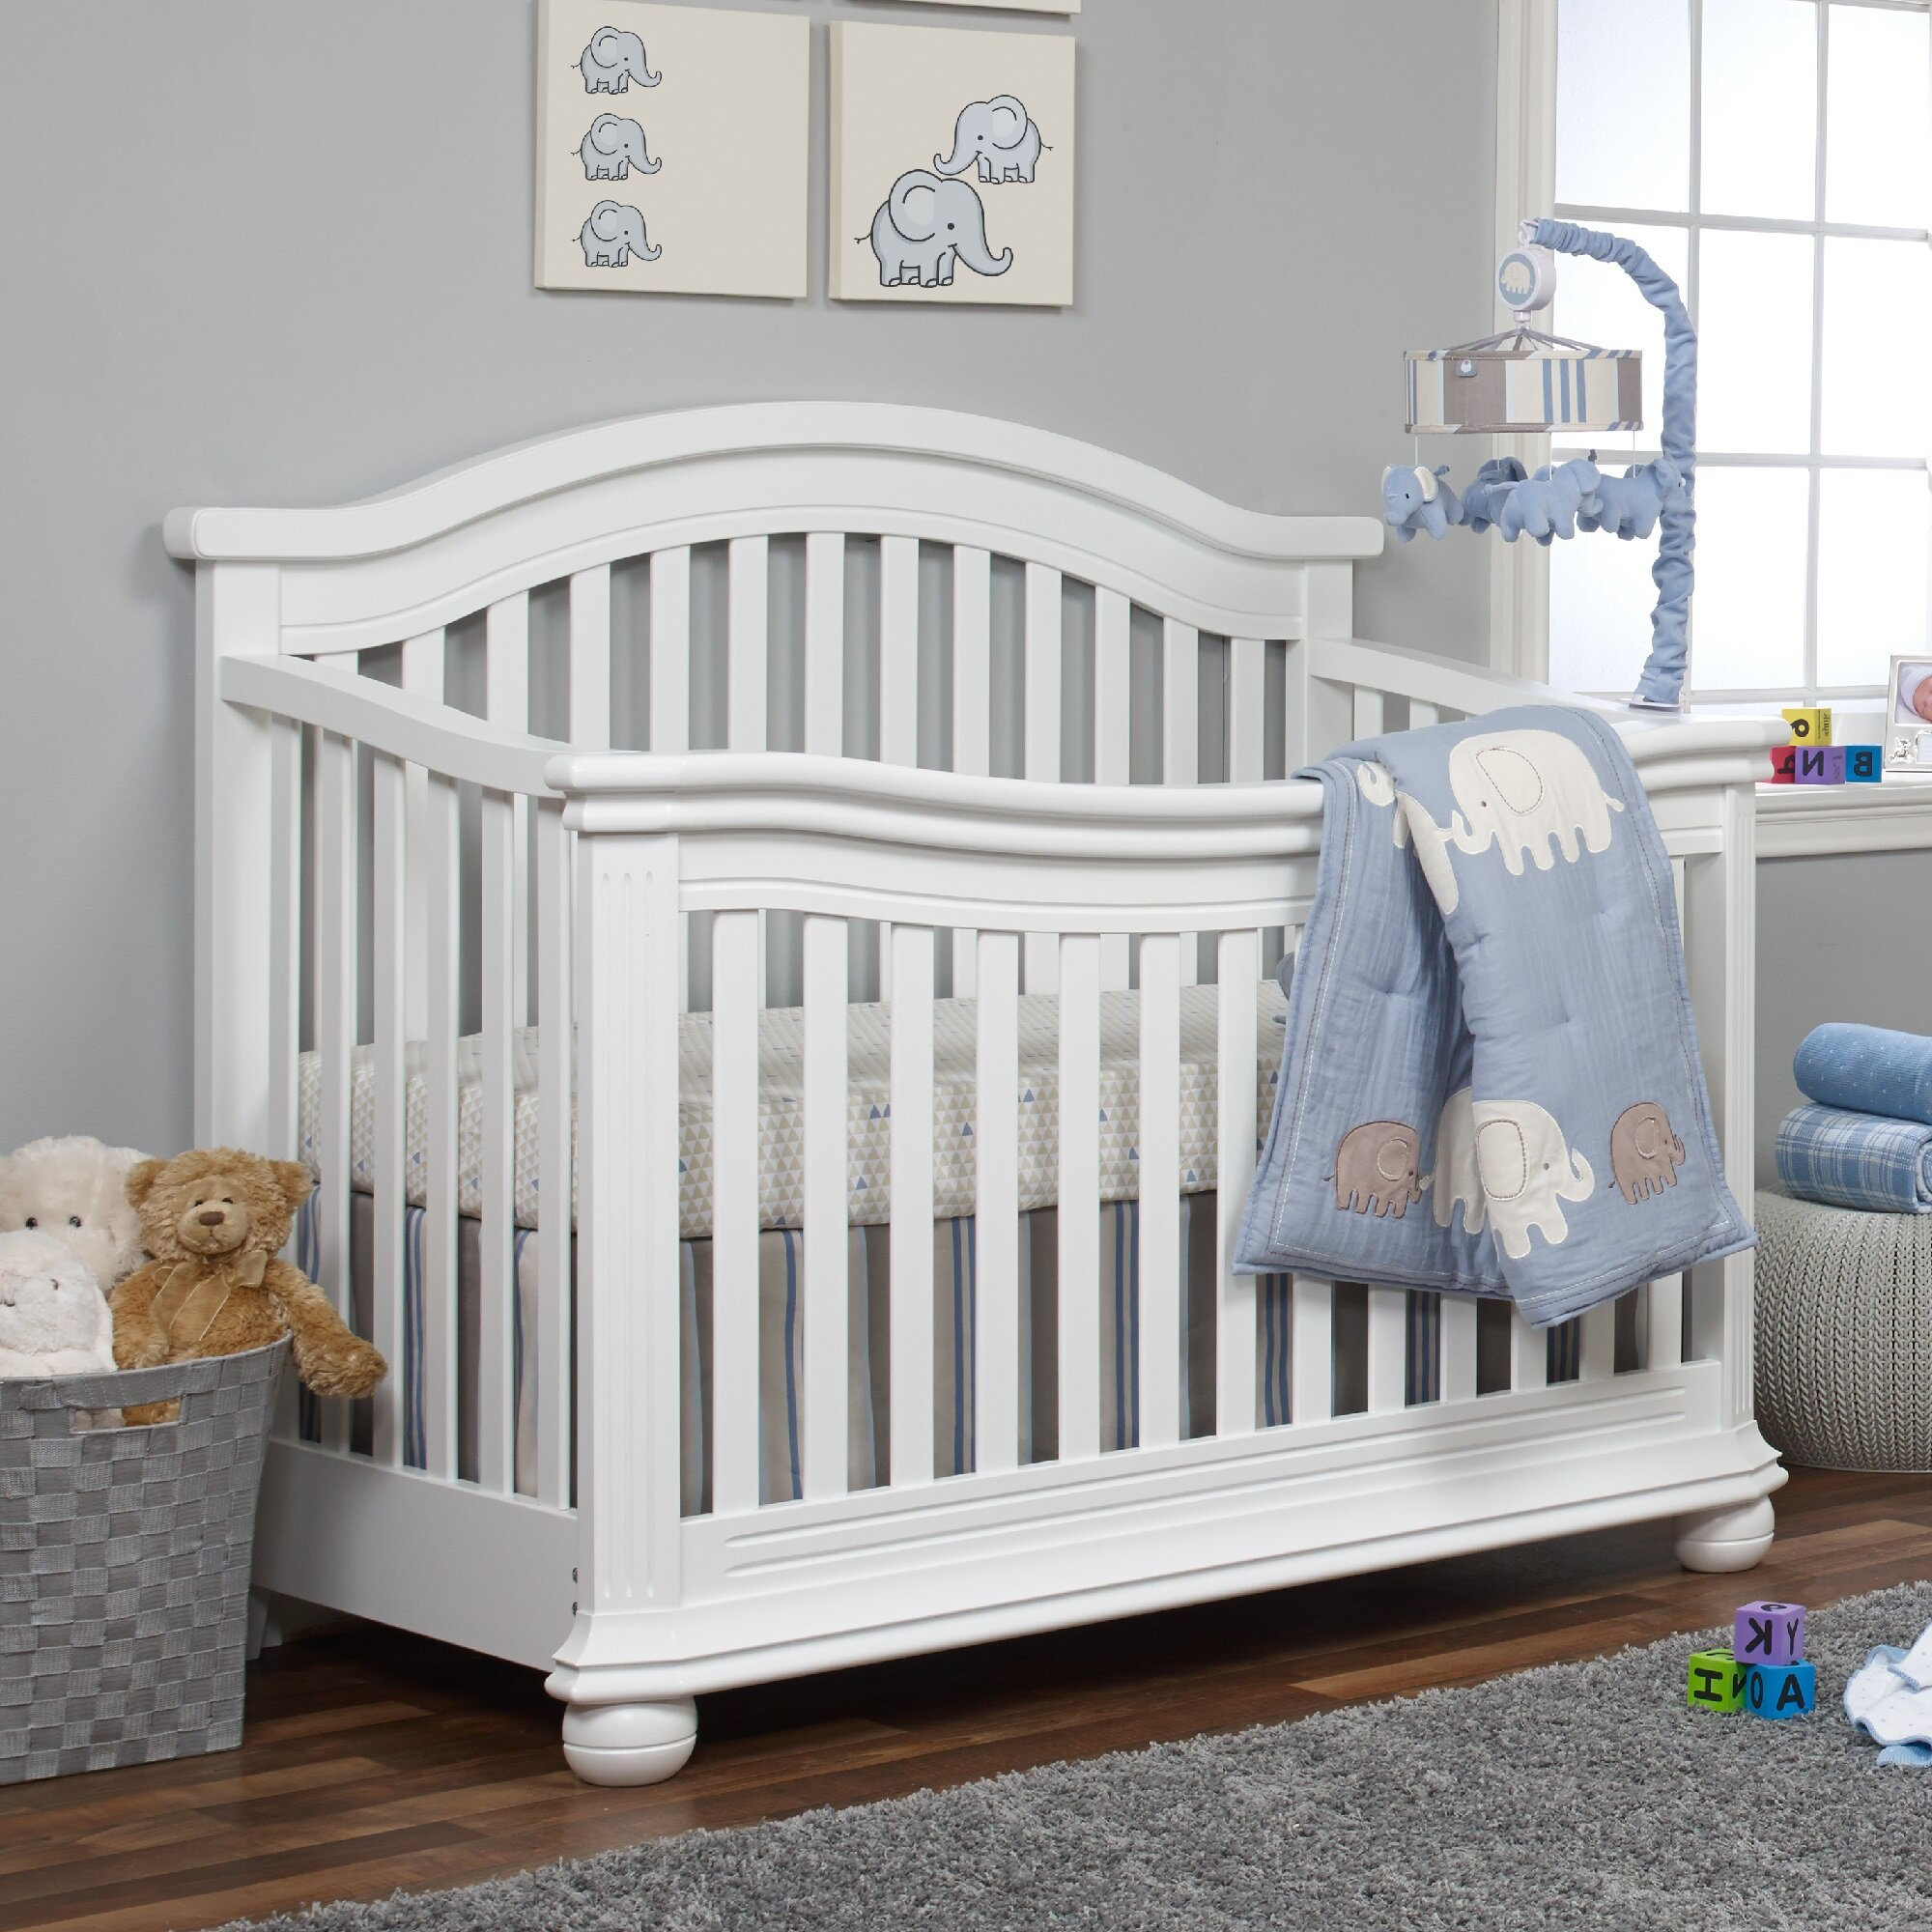 mini angle cribs convertible euro f turn beds twin london to bedf converted toddler size do turns h graco that into in white bed crib